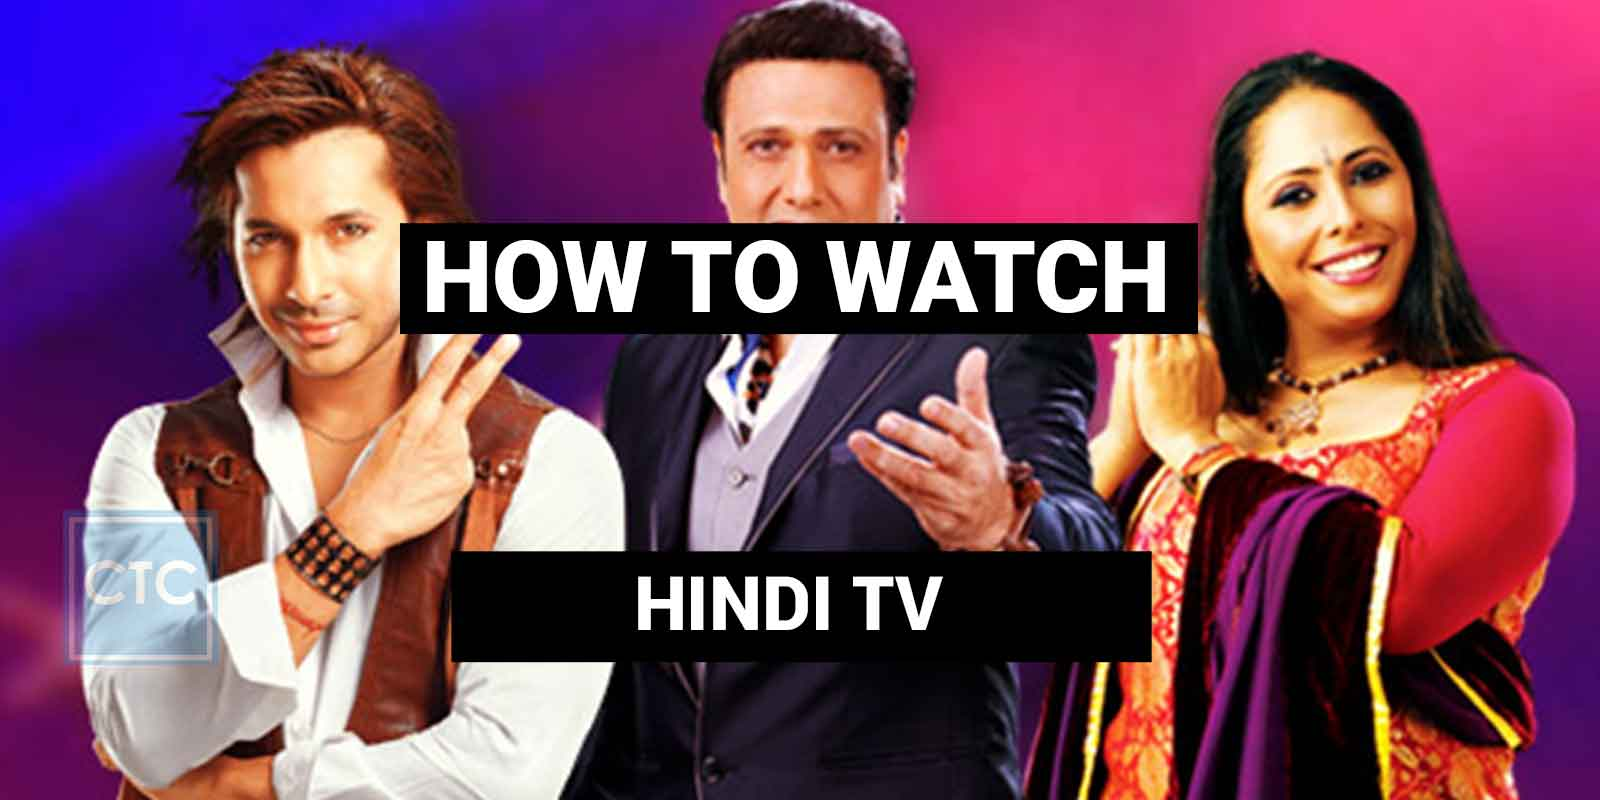 hindi tv data Tv distribution data can signifi cantly four years spotlight on india's entertainment economy spotlight on india's entertainment economy, india.